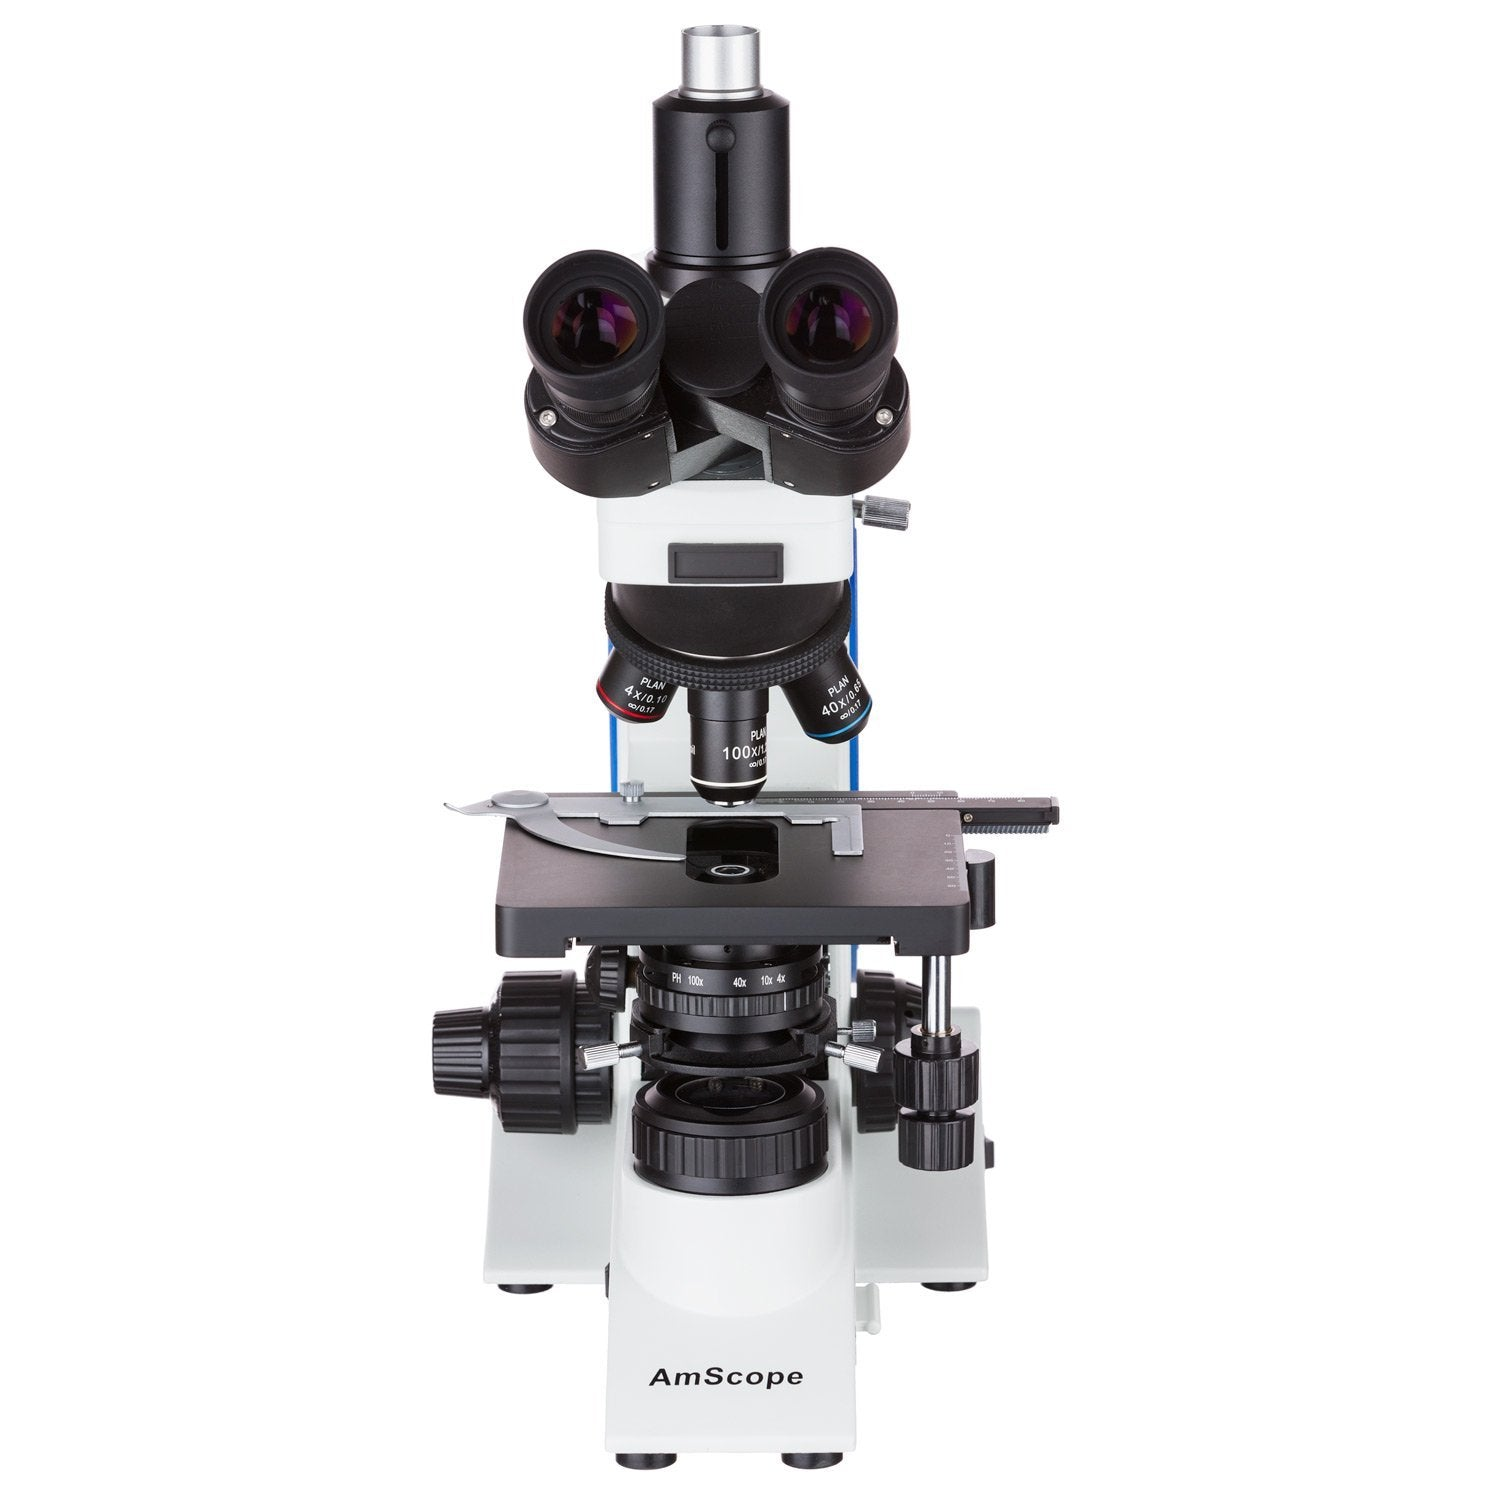 AmScope 40X-1000X Plan Infinity Kohler Laboratory Research Microscope + 5MP USB3.0 Camera